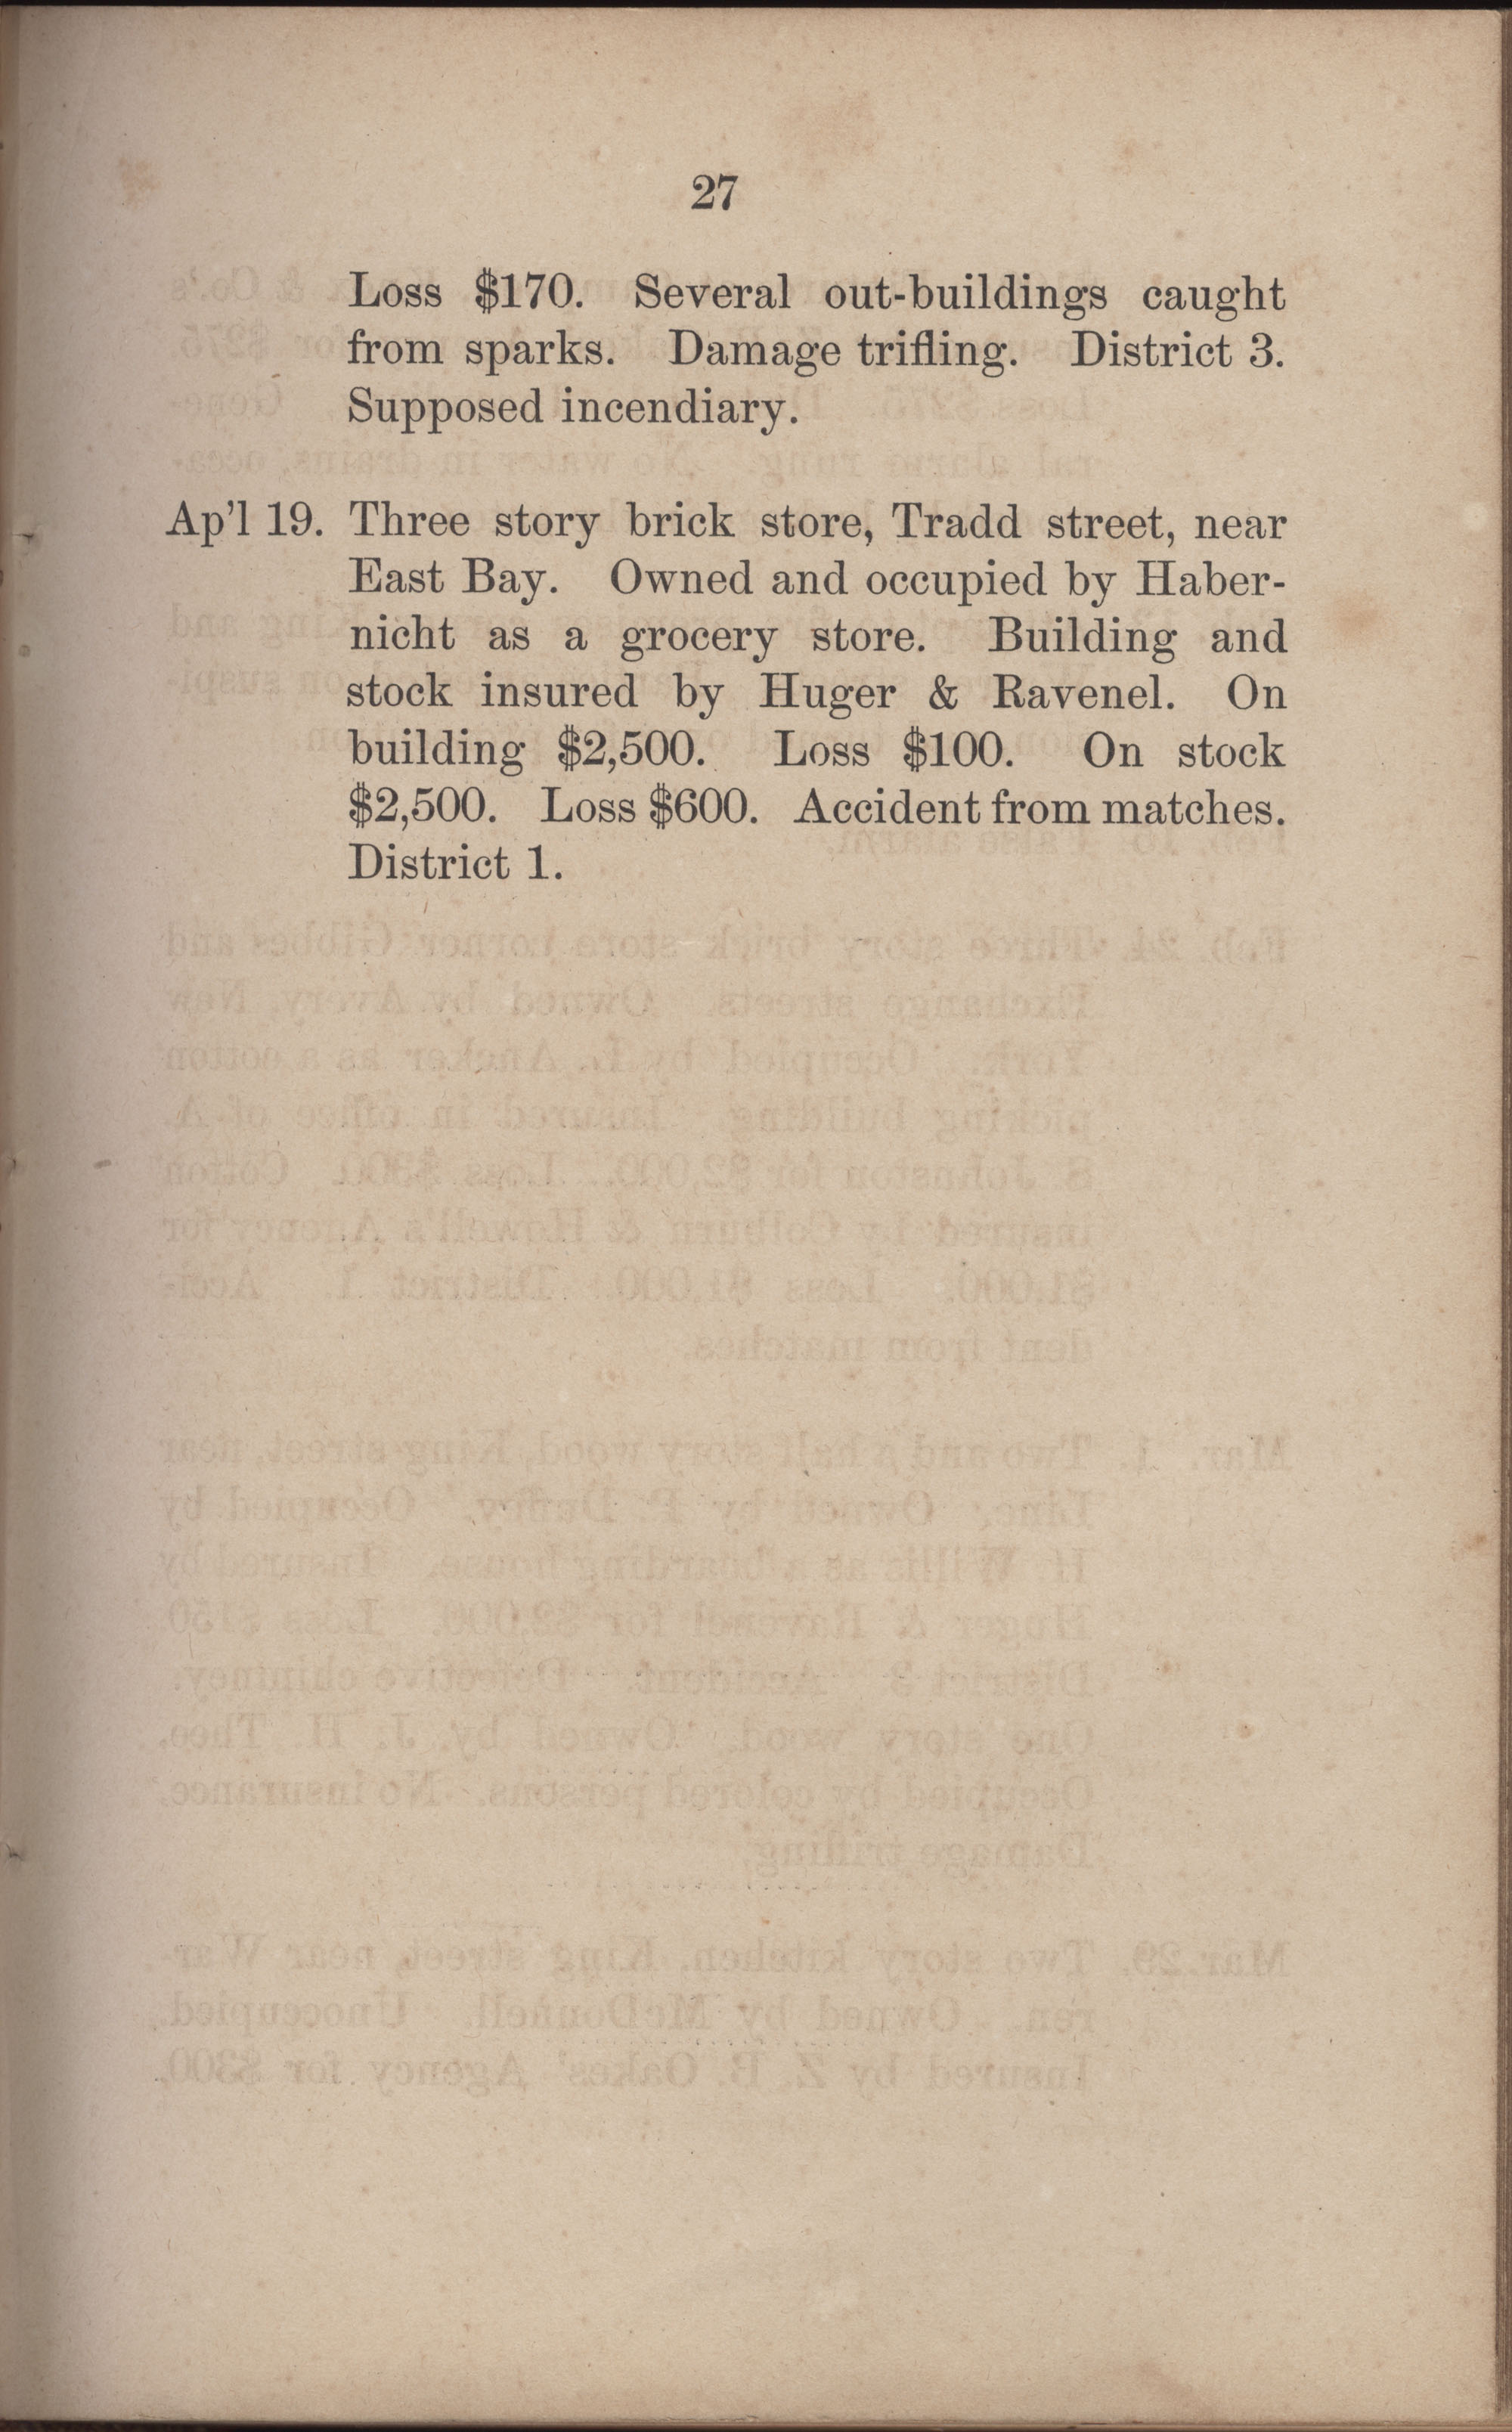 Annual Report of the Chief of the Fire Department of the City of Charleston, page 254